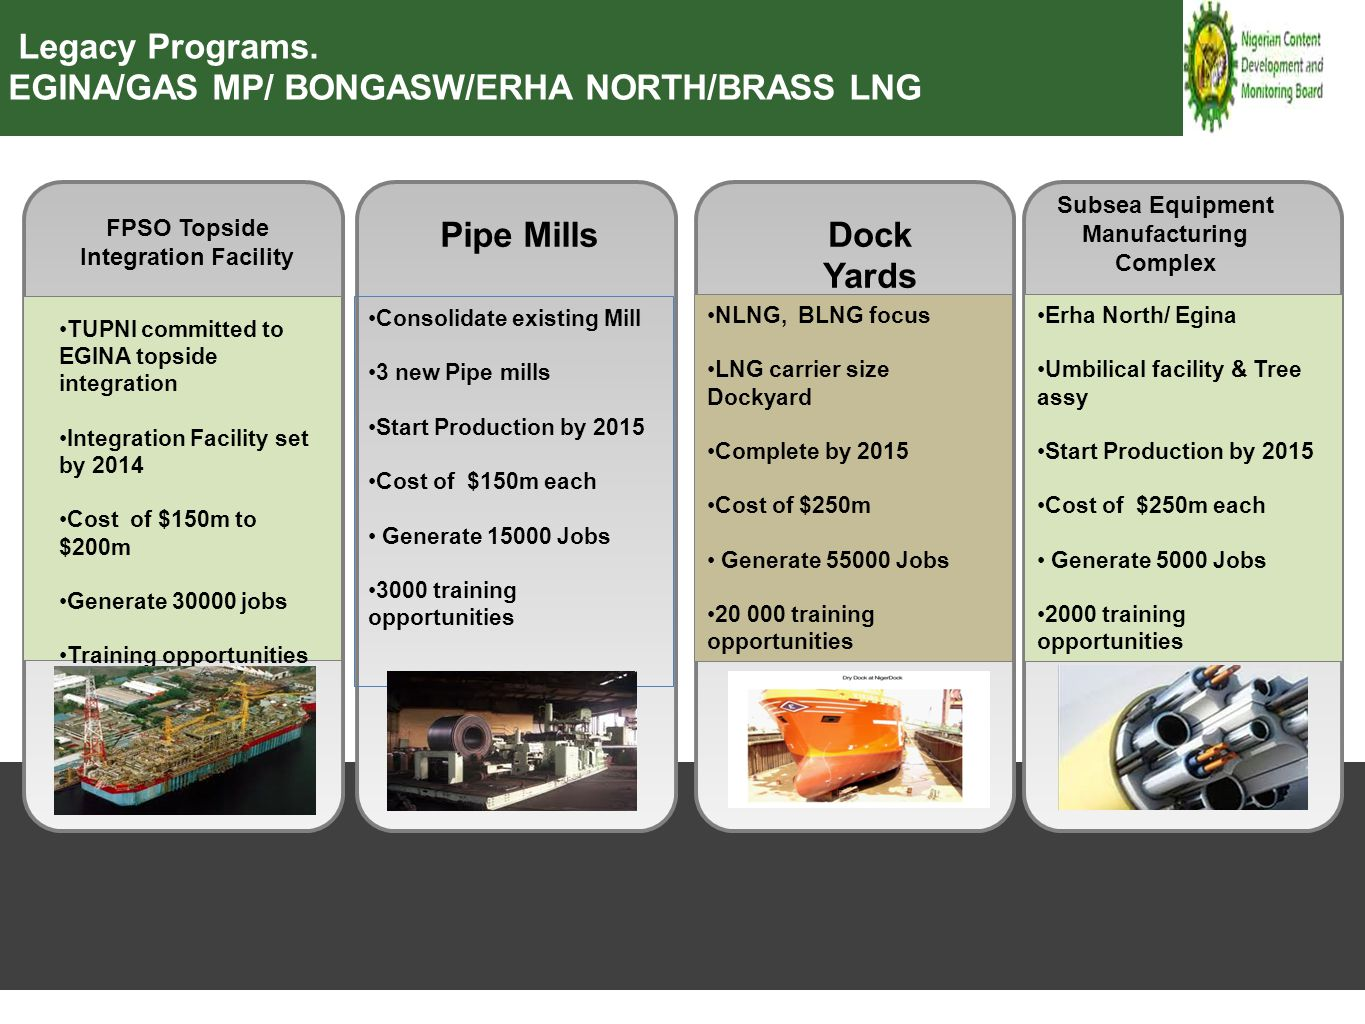 Consolidate existing Mill 3 new Pipe mills Start Production by 2015 Cost of $150m each Generate 15000 Jobs 3000 training opportunities NLNG, BLNG focu